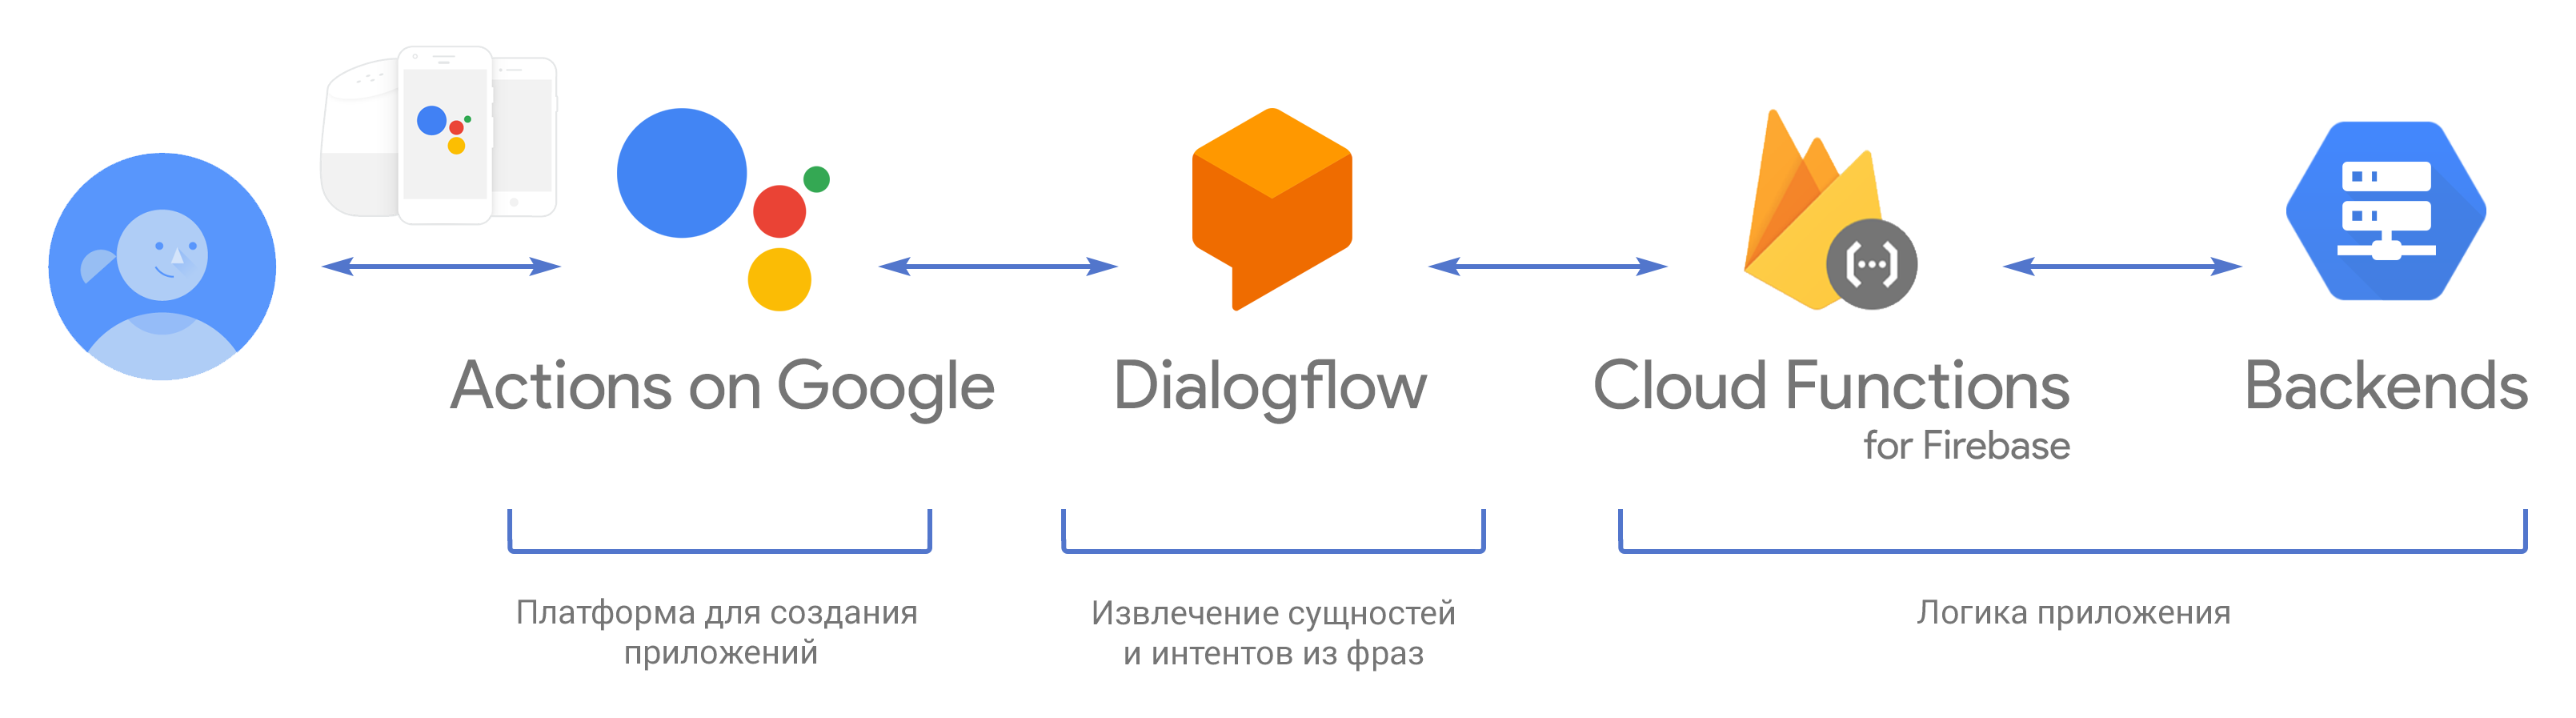 Actions on Google: write a simple application for Google Assistant for Dialogflow and Cloud Functions for Firebase